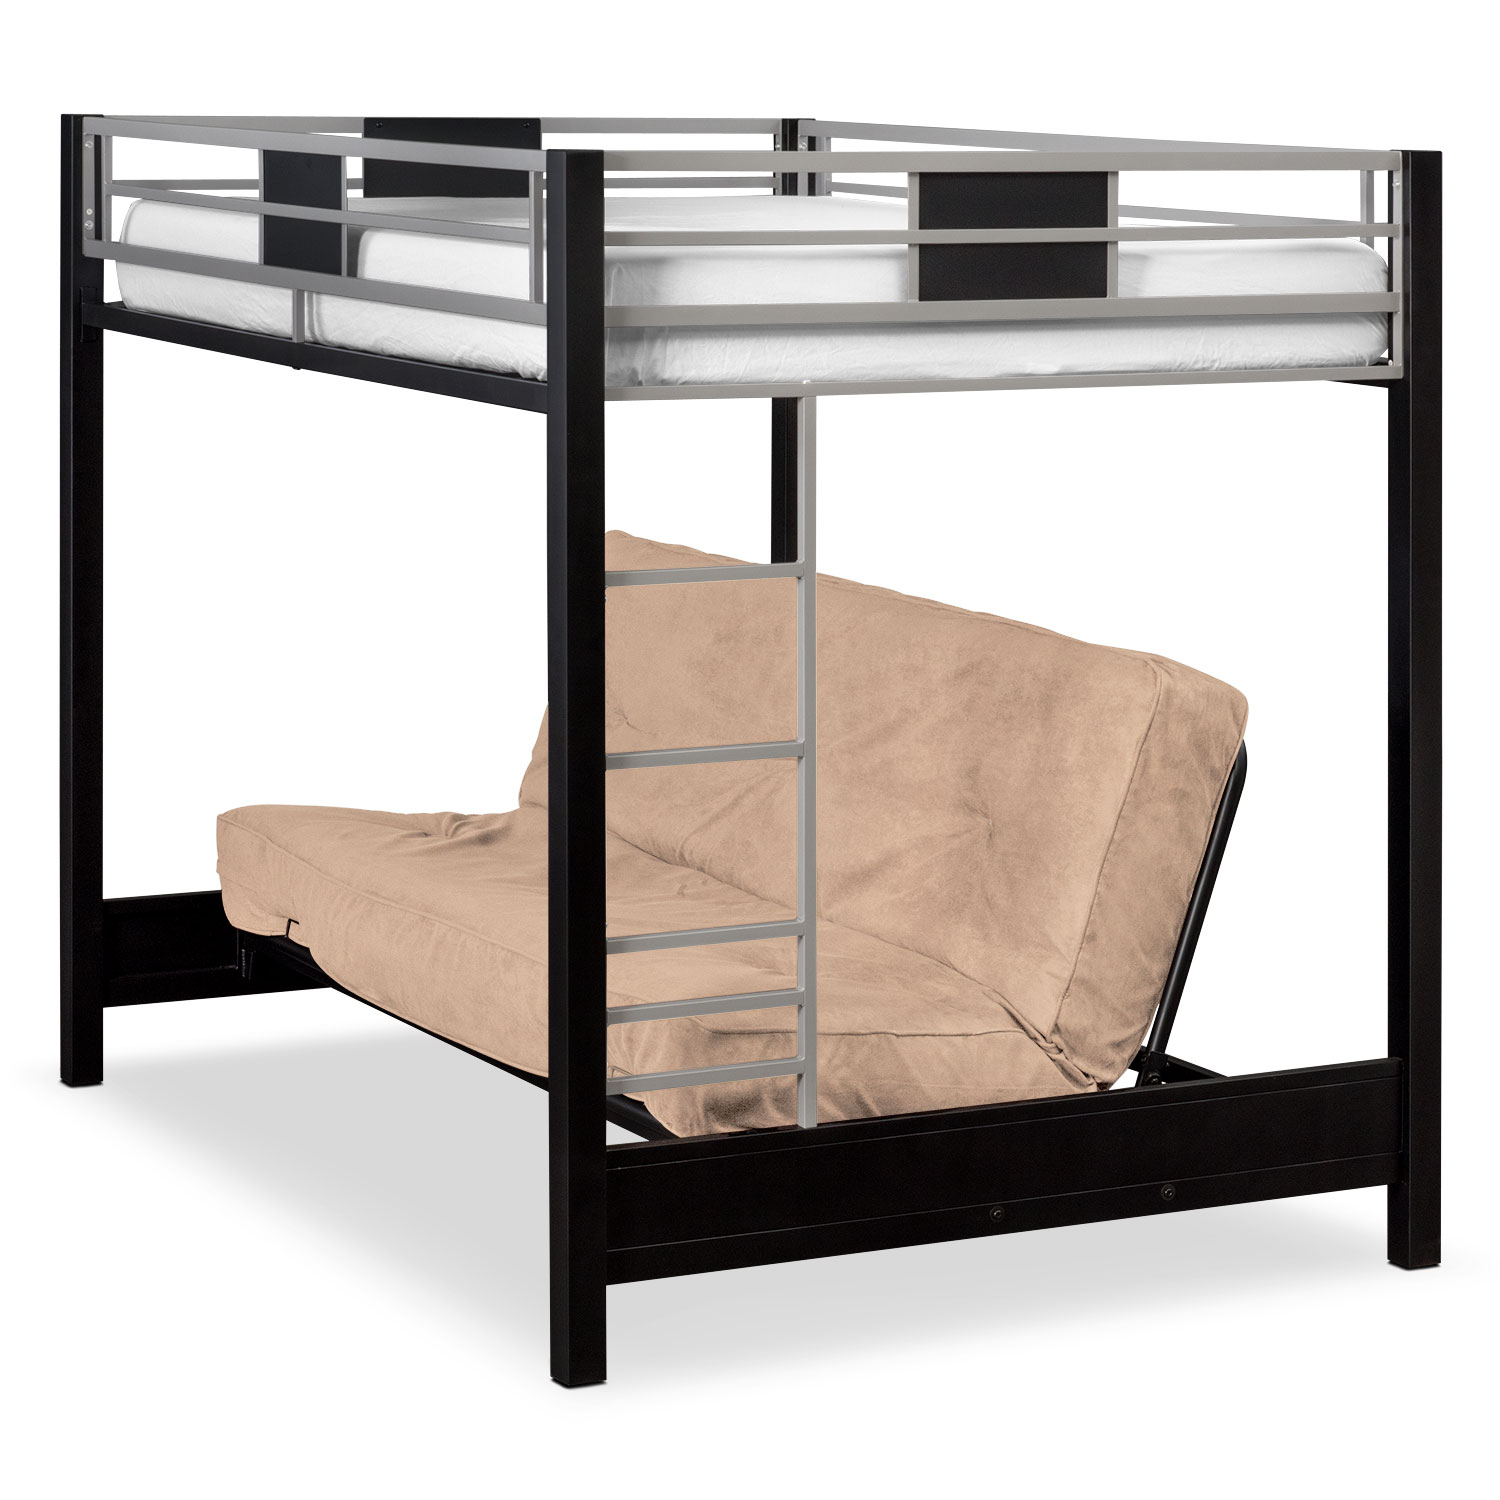 samba full futon bunk bed with cappuccino futon mattress loft bunk beds   value city furniture and mattresses  rh   valuecityfurniture